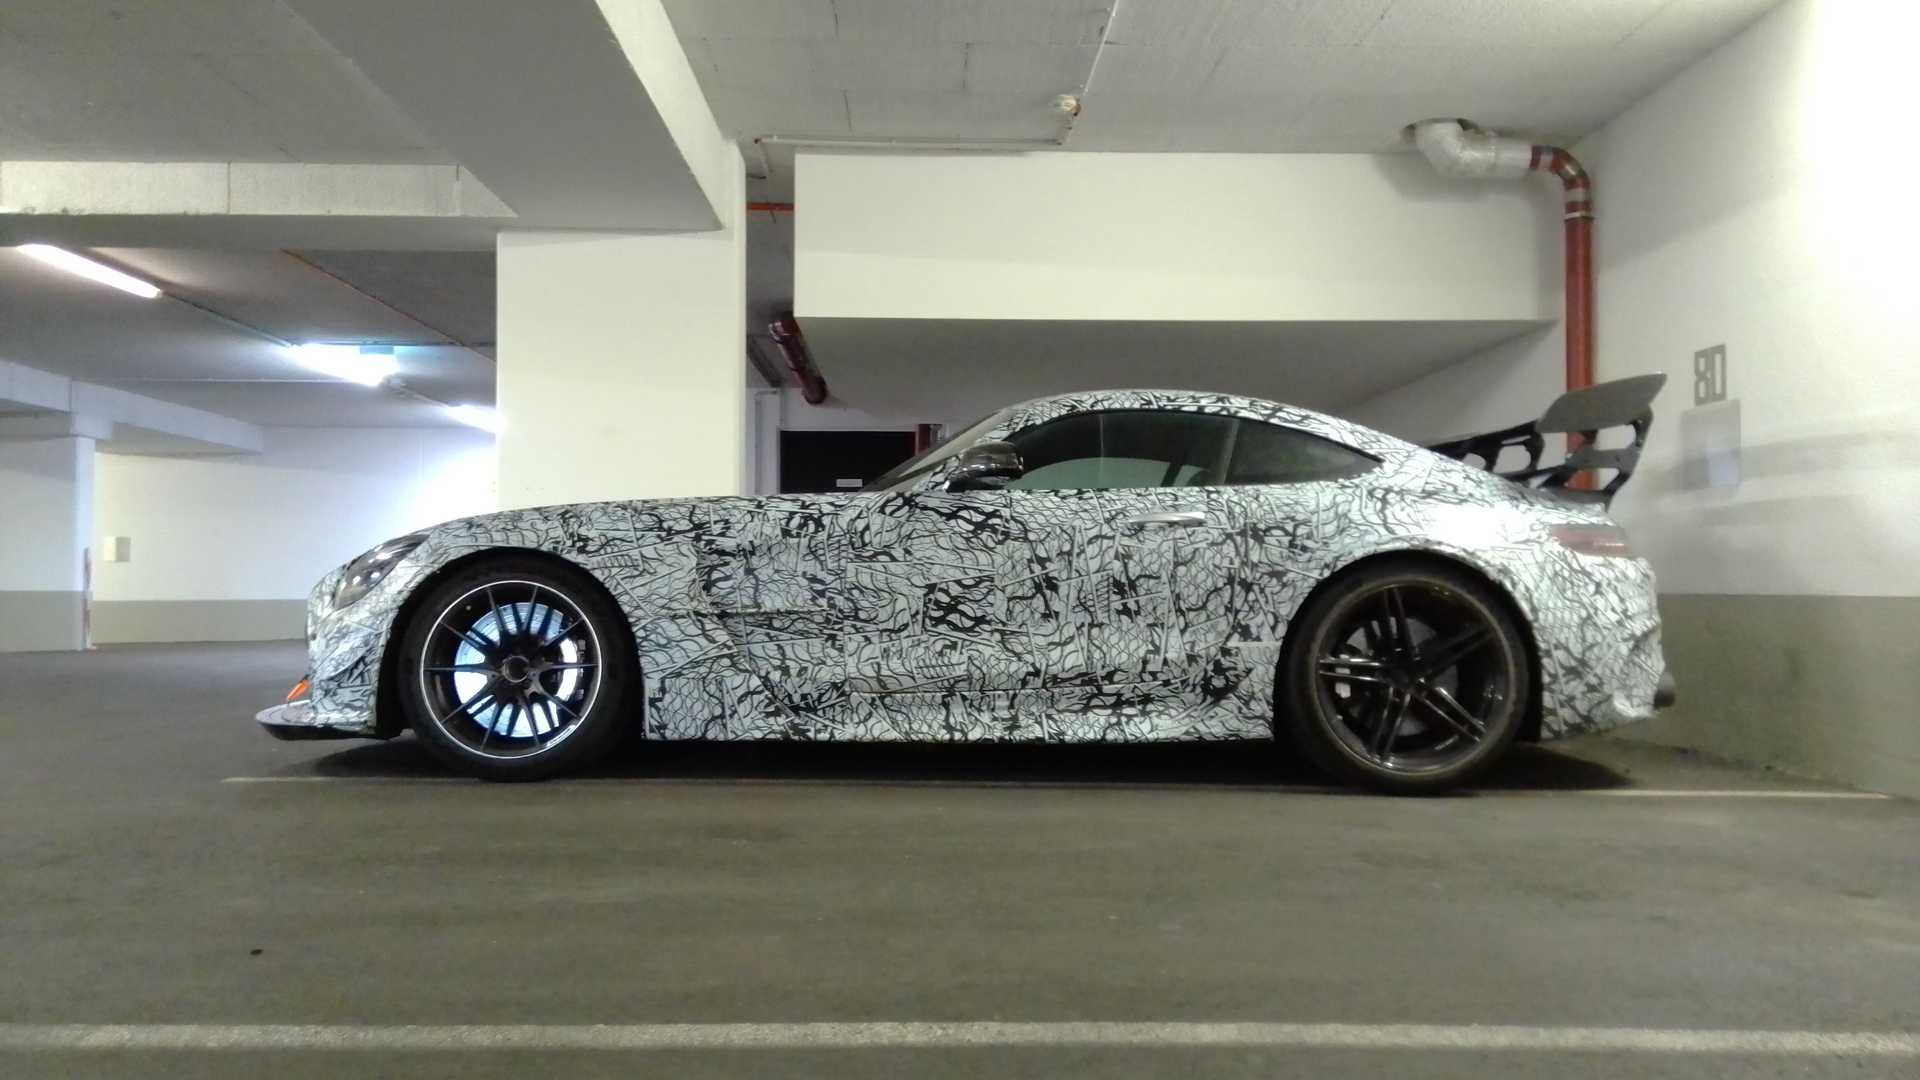 Mercedes-AMG GT Black Series camouflaged prototype